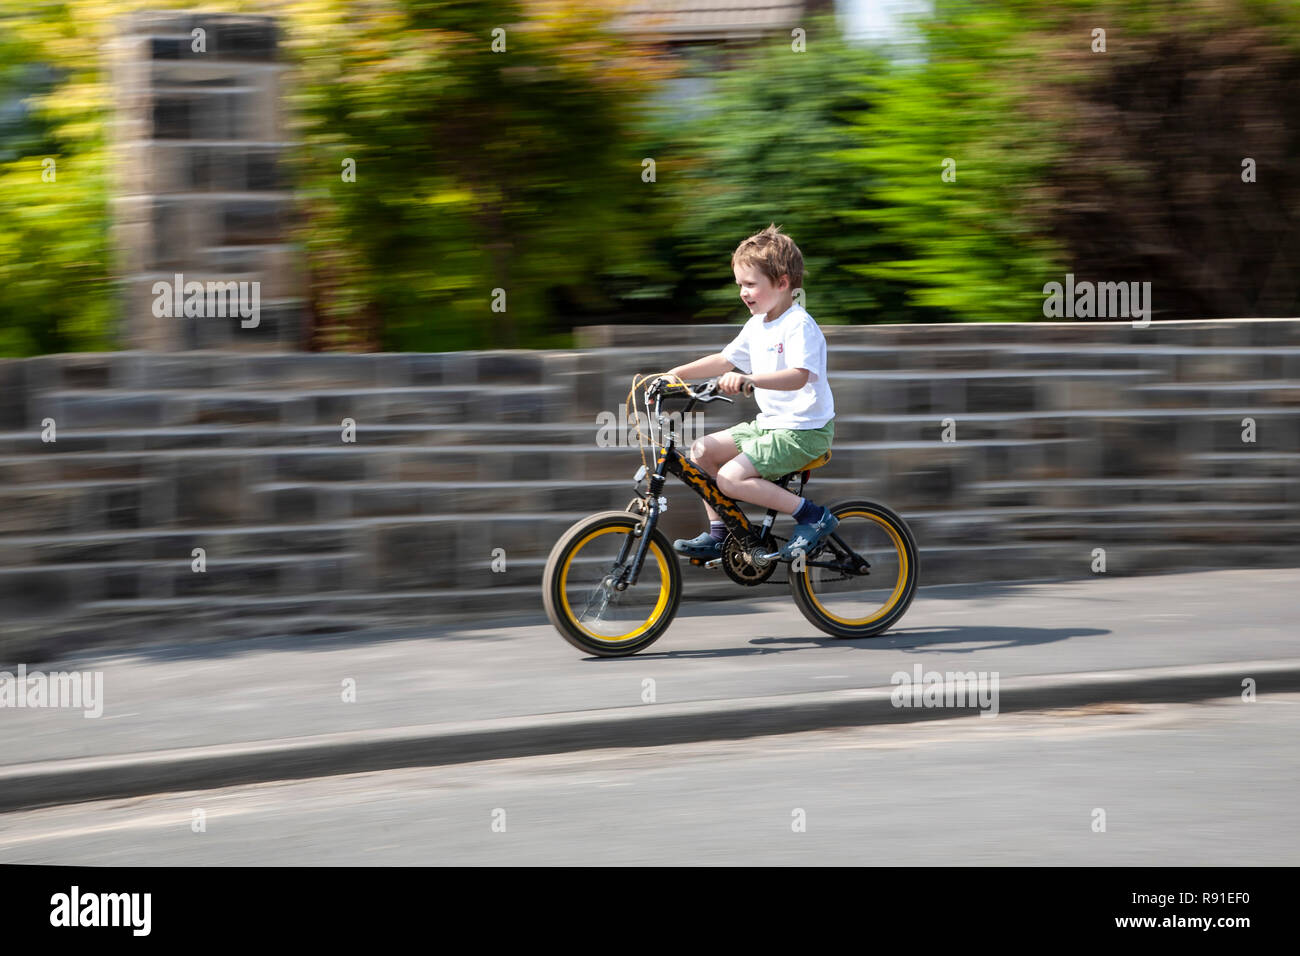 Child's Bike Stock Photos & Child's Bike Stock Images - Alamy